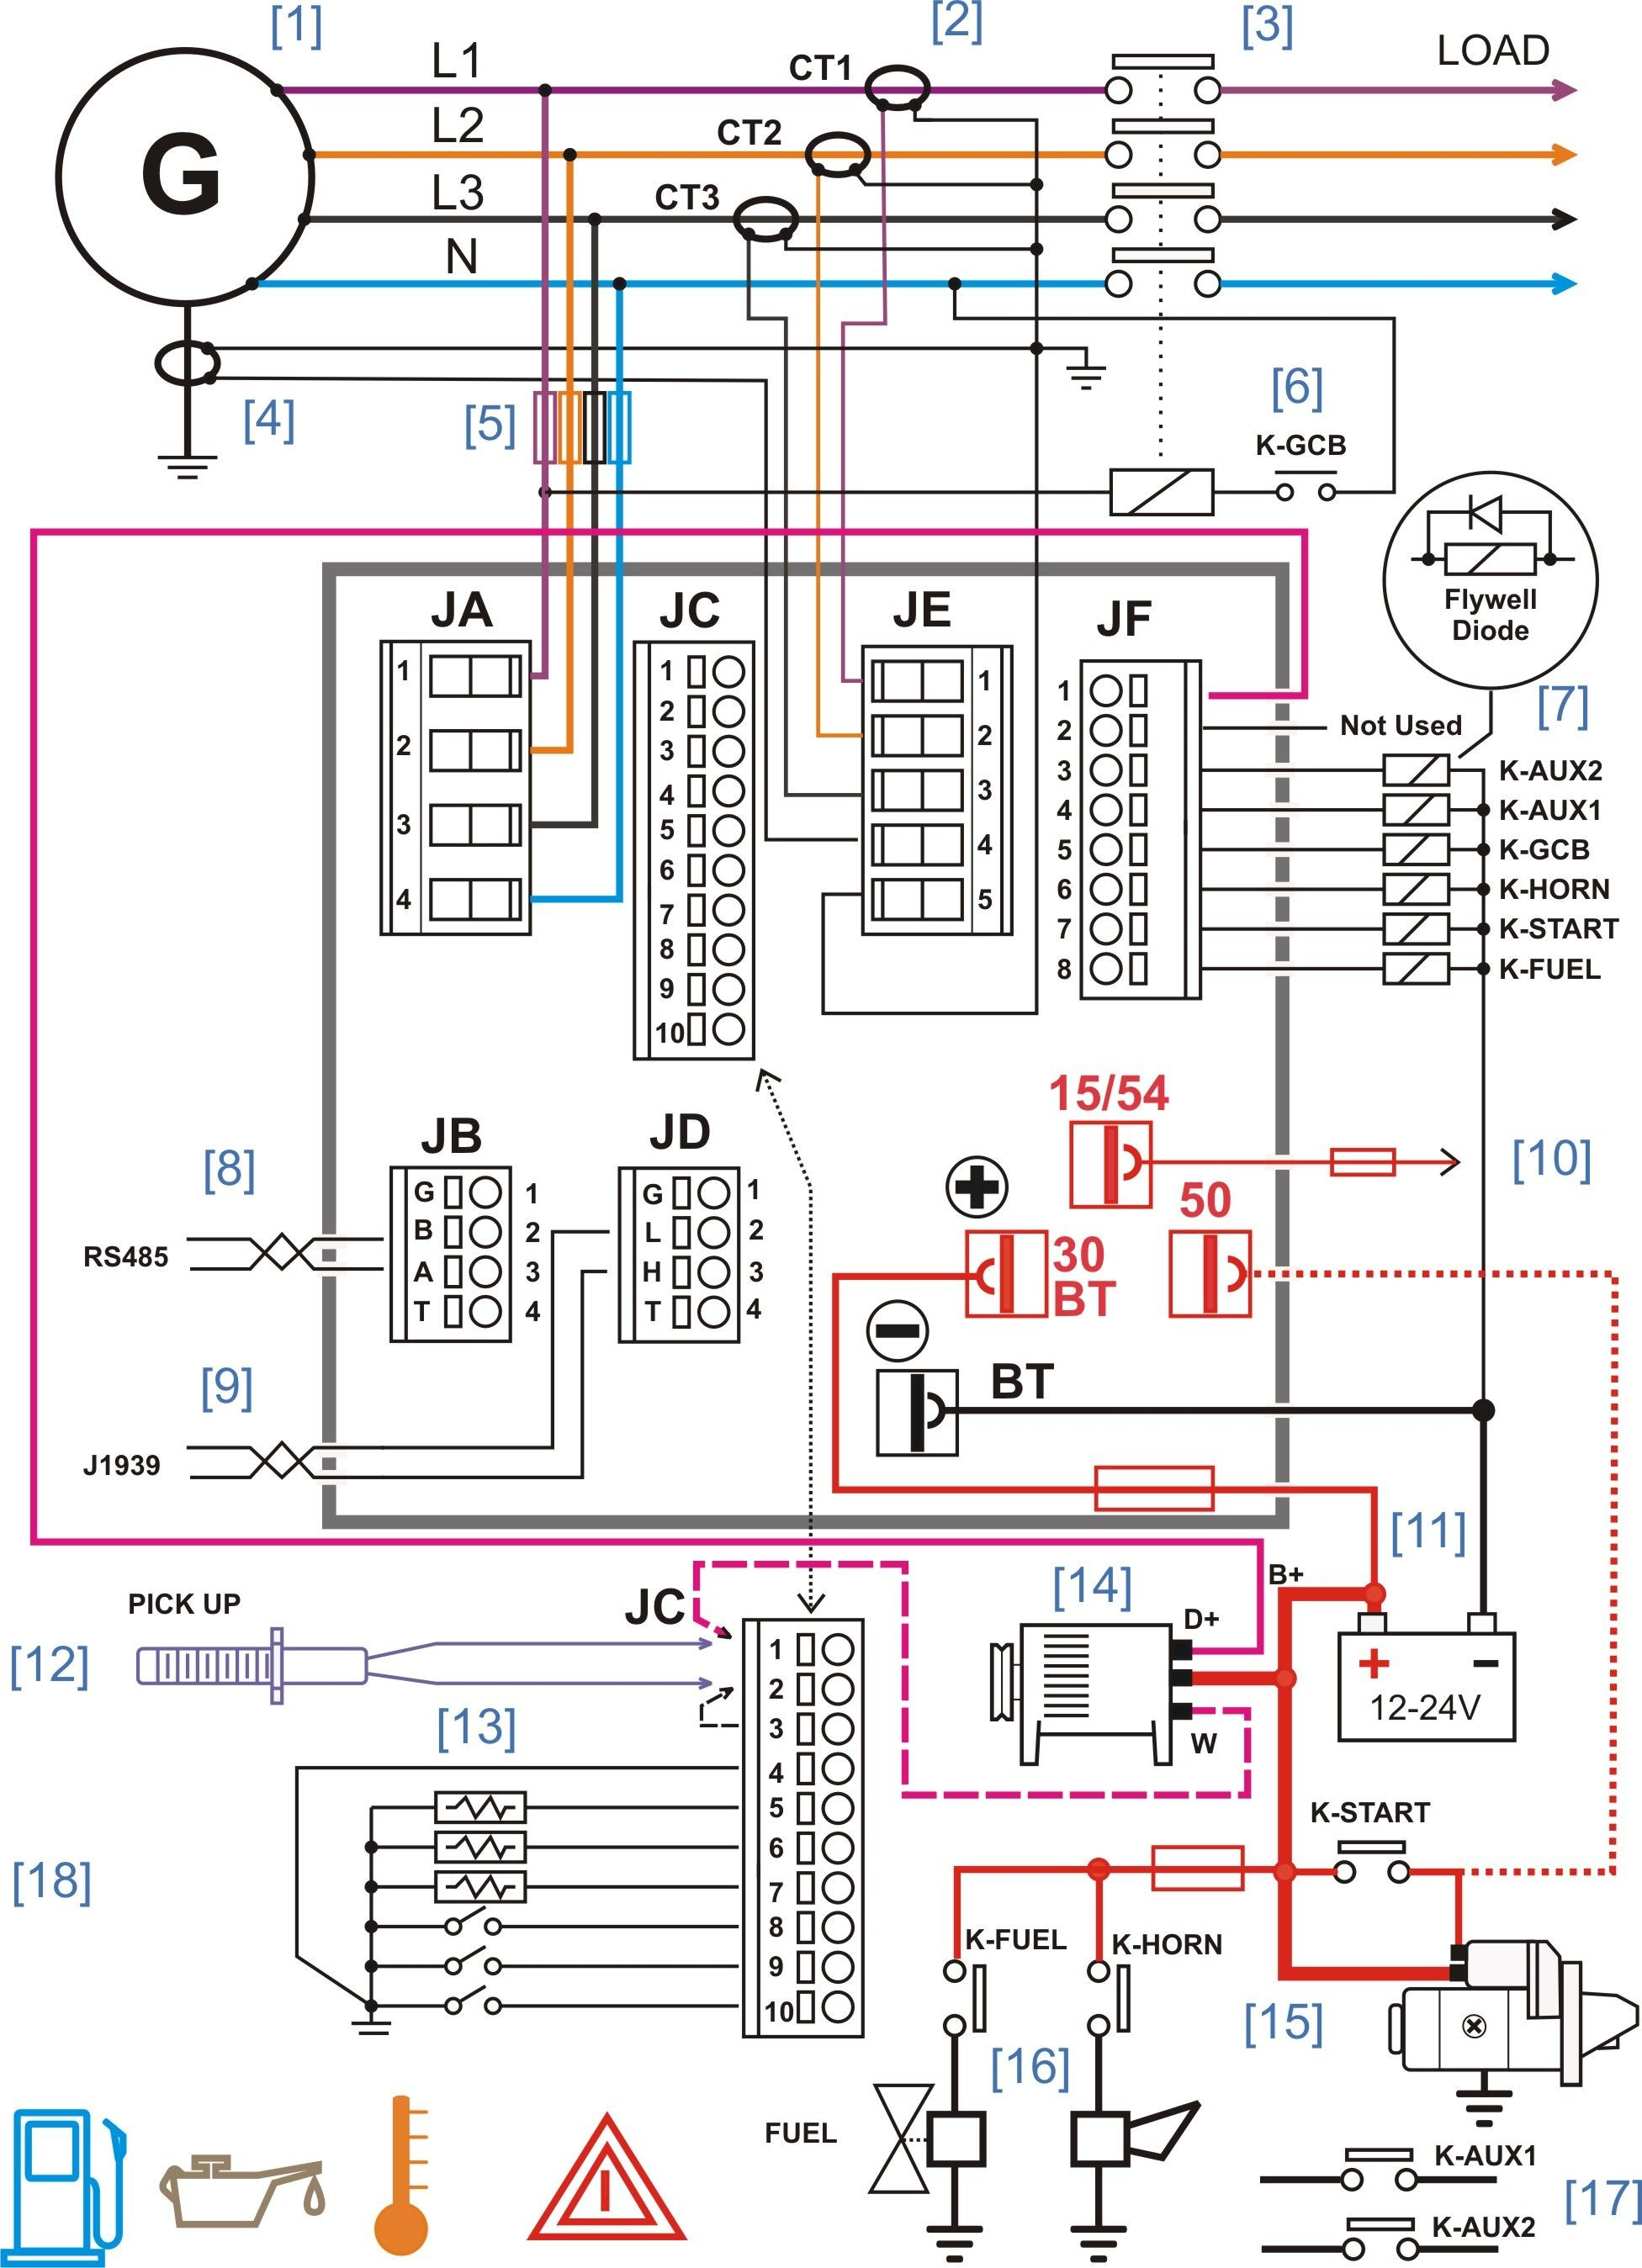 New Wiring Diagram Books | Electrical circuit diagram, Electrical diagram,  Electrical wiring diagramPinterest